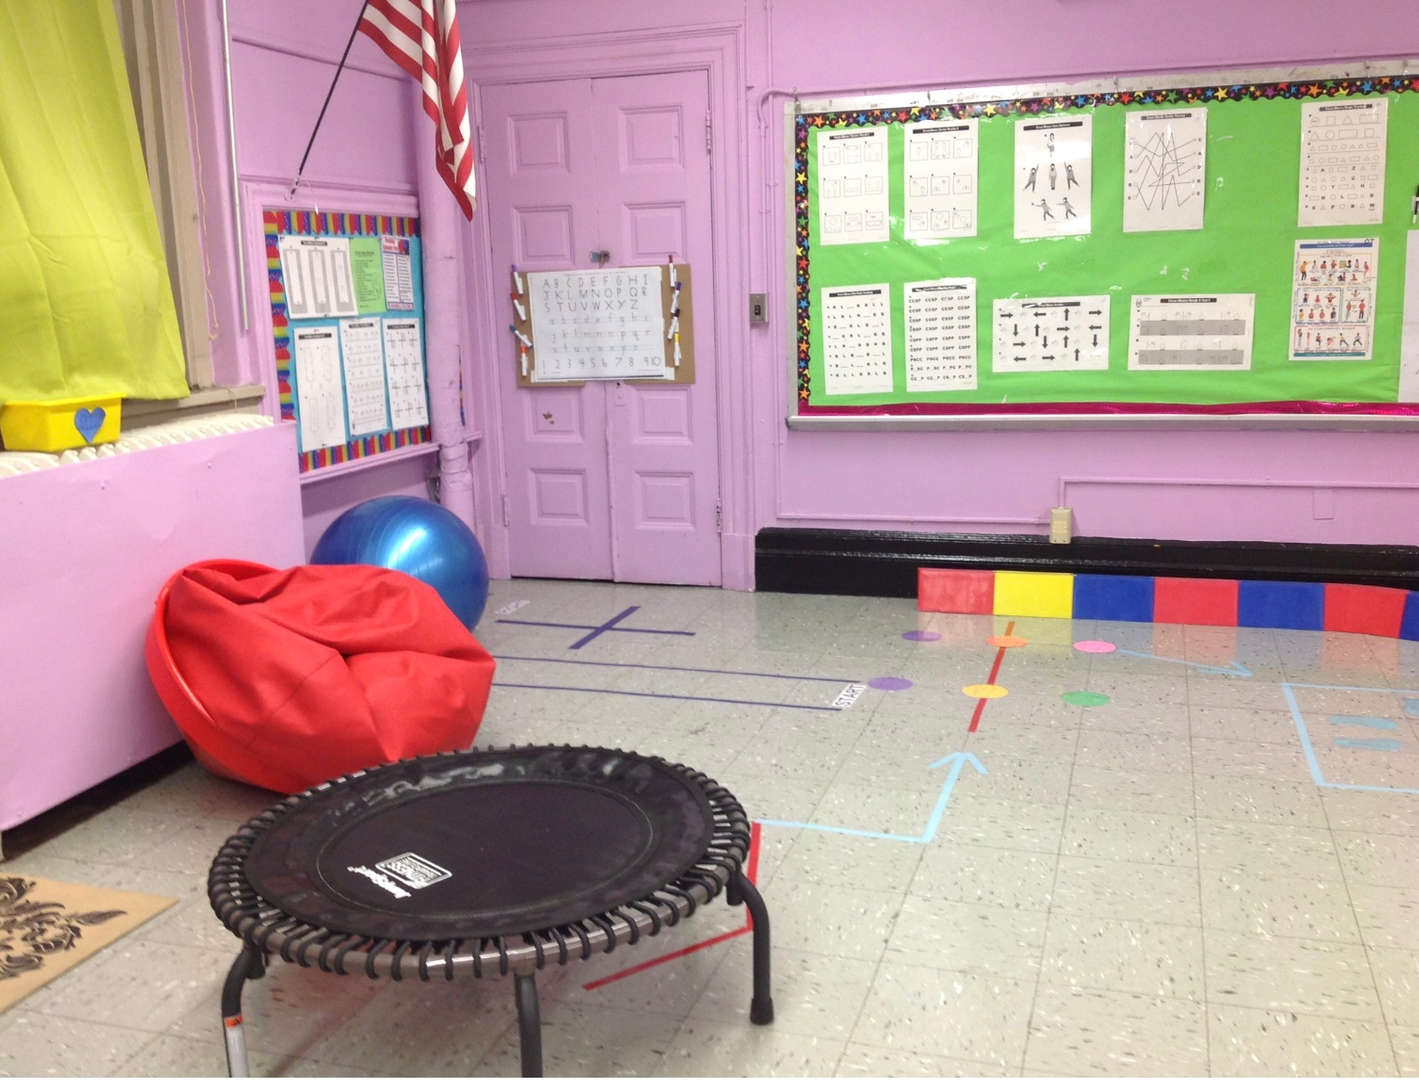 Mini-trampoline and a bean bag provide physical activities.